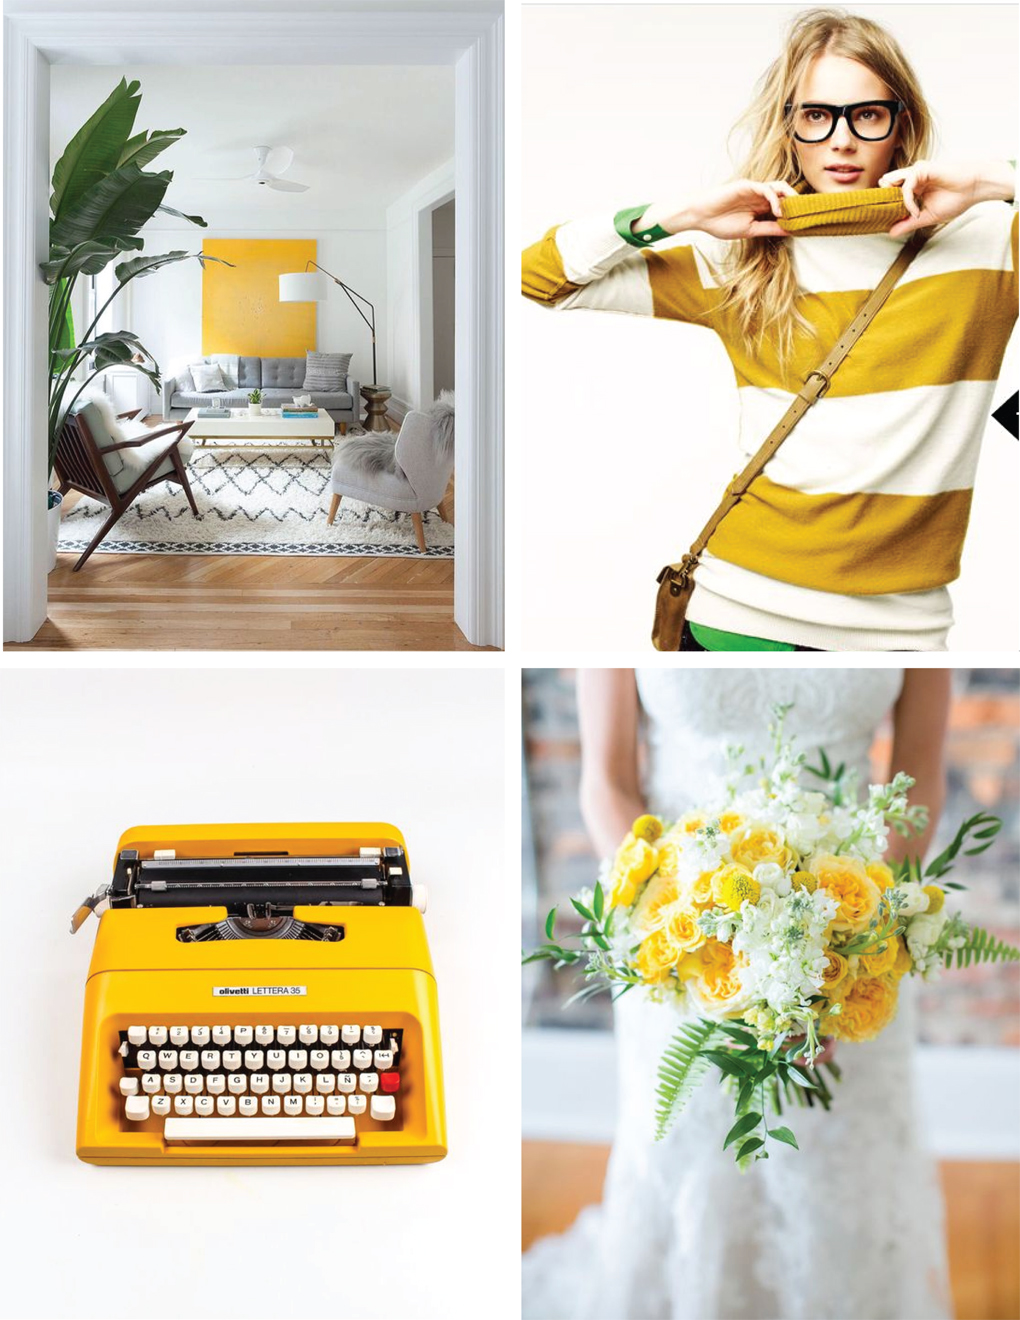 Sunshine Yellow Vibe | Akin Design Studio Blog | From interiors, products, fashion and nature, sunshine yellow complimented with a touch of green and heavy dose of white does wonders for the soul.